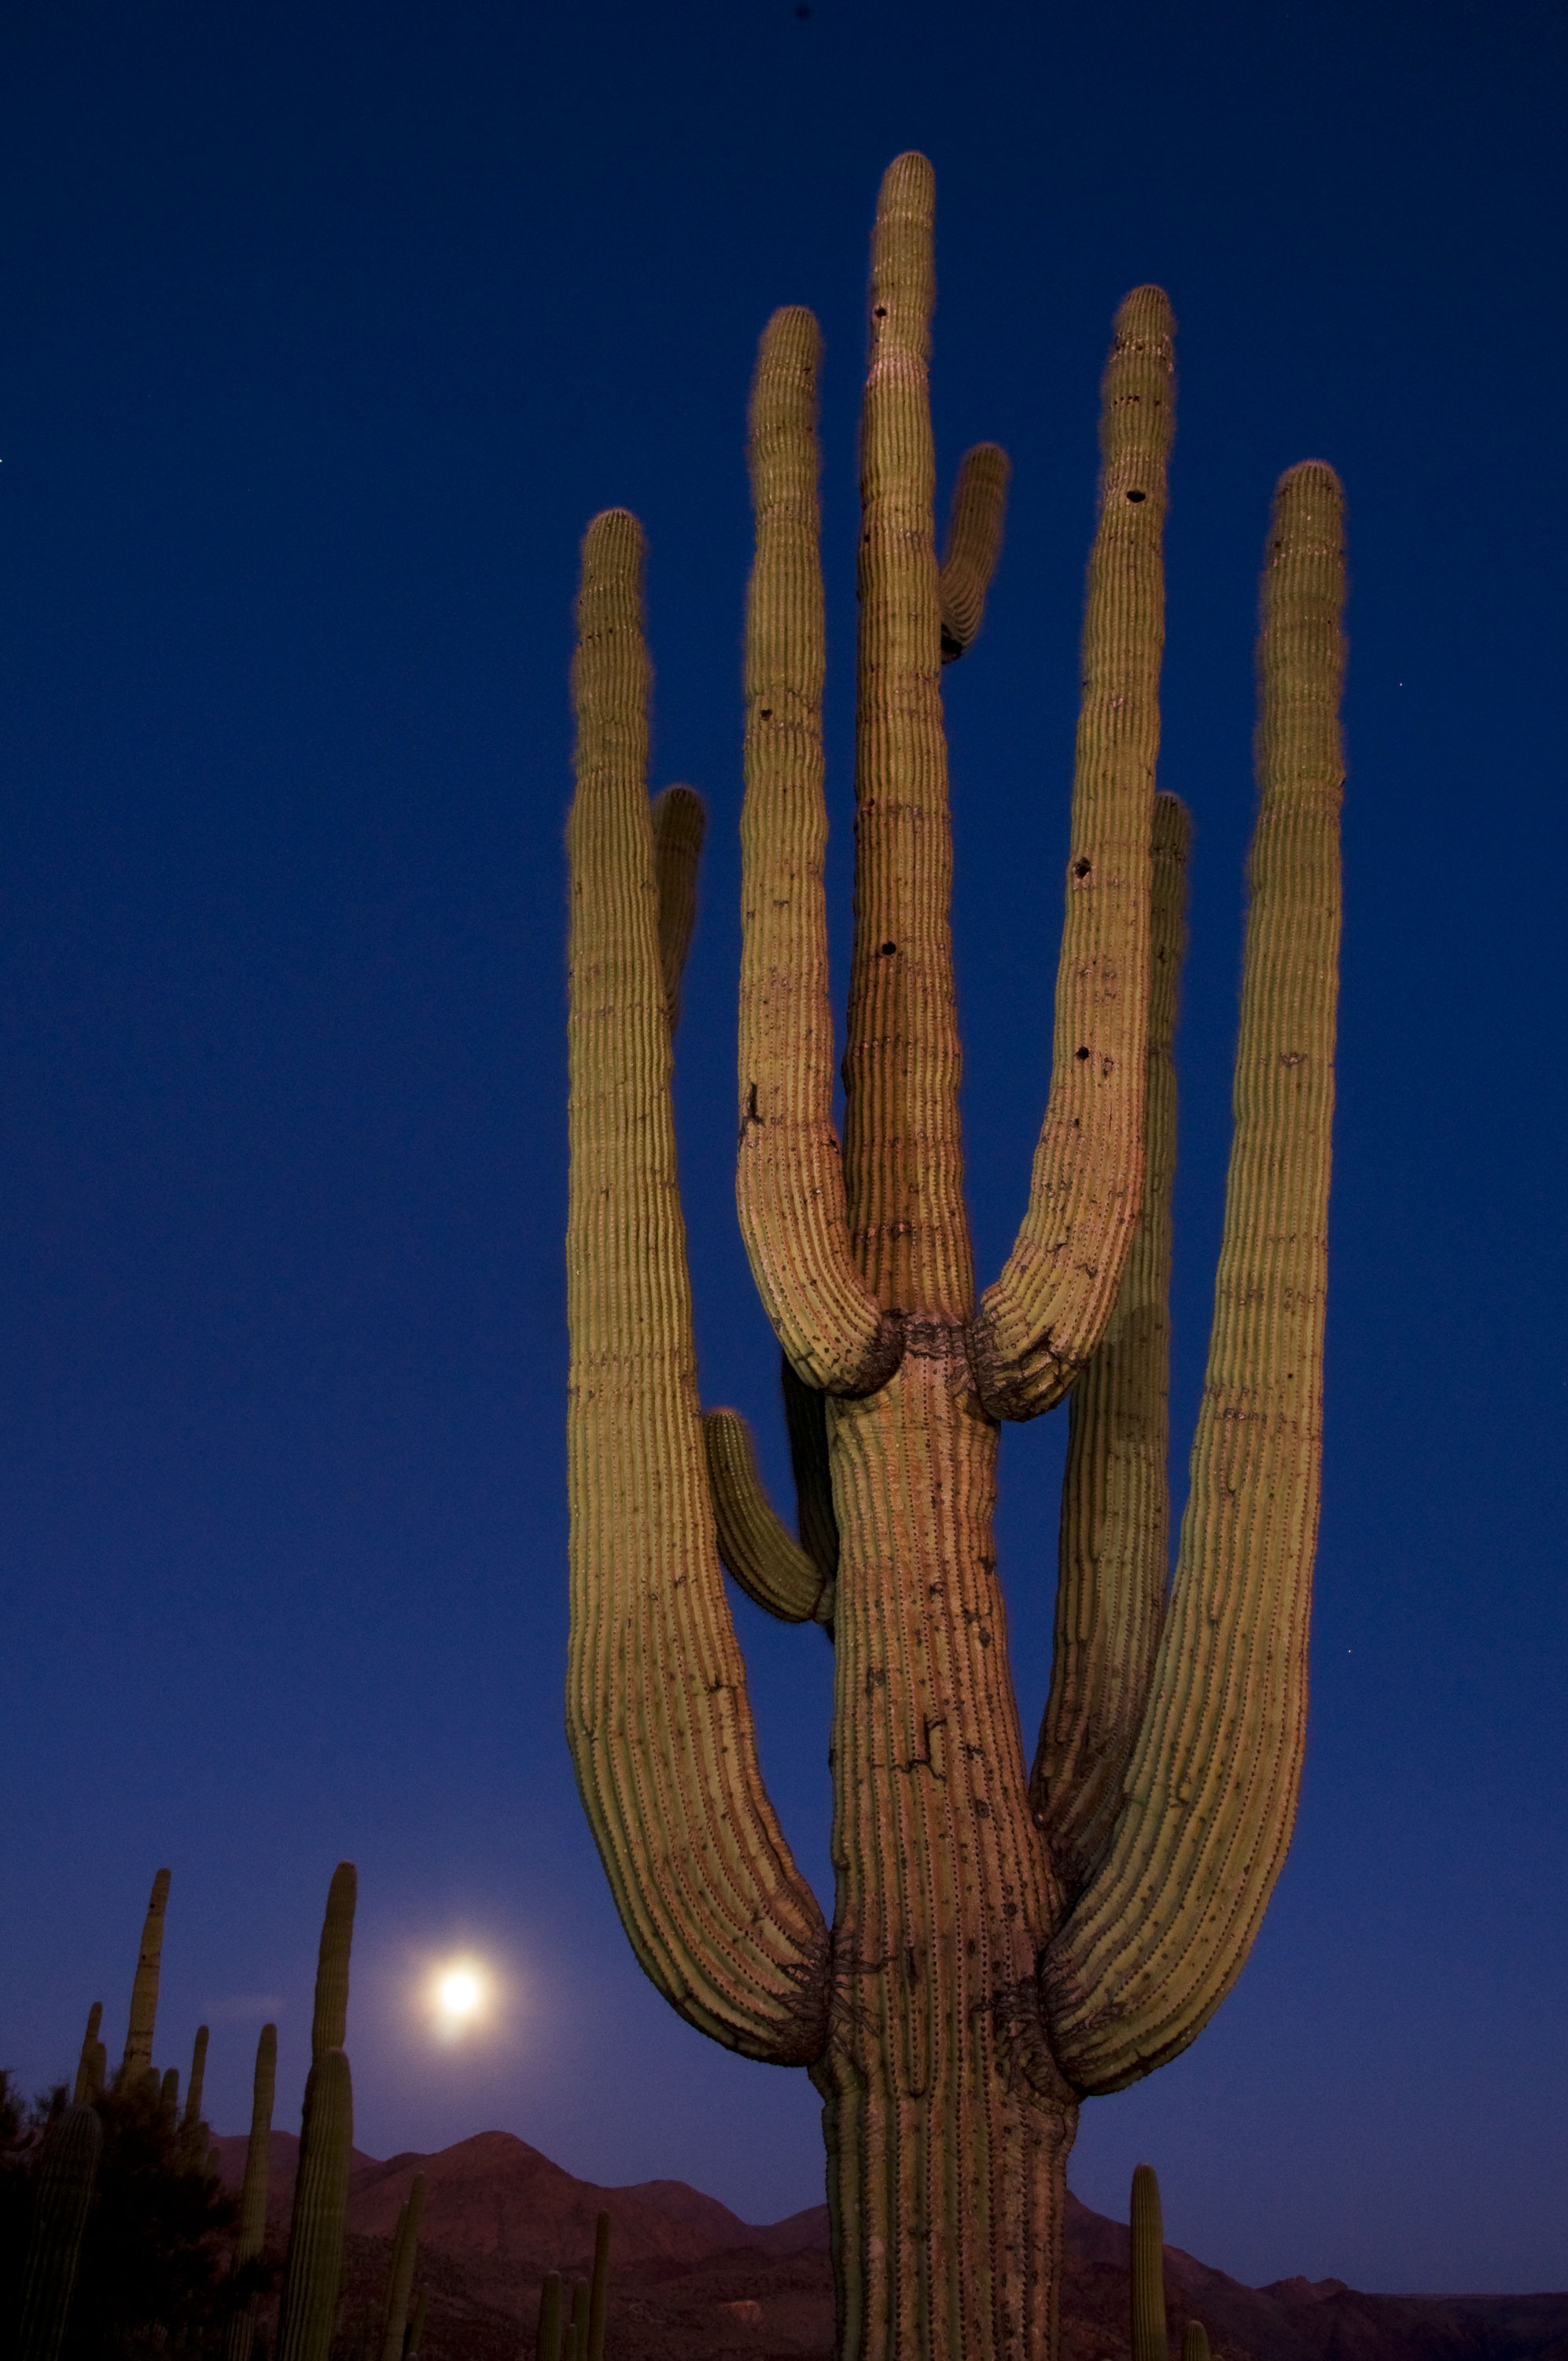 Saguaro cactus at twilight with rising moon along the New River, Arizona